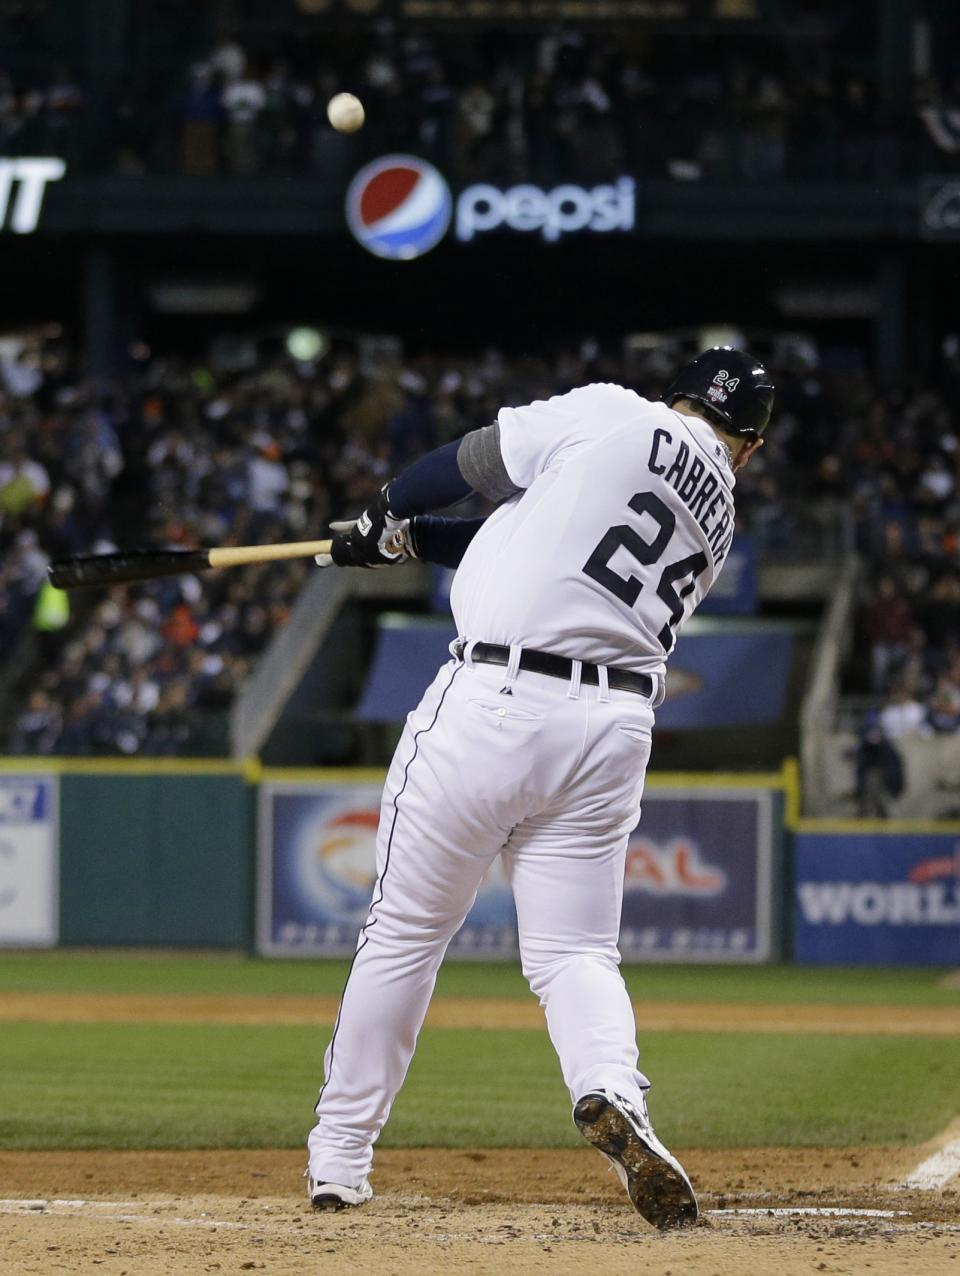 Detroit Tigers' Miguel Cabrera hits a two-run home run during the third inning of Game 4 of baseball's World Series against the San Francisco Giants Sunday, Oct. 28, 2012, in Detroit. (AP Photo/Matt Slocum)